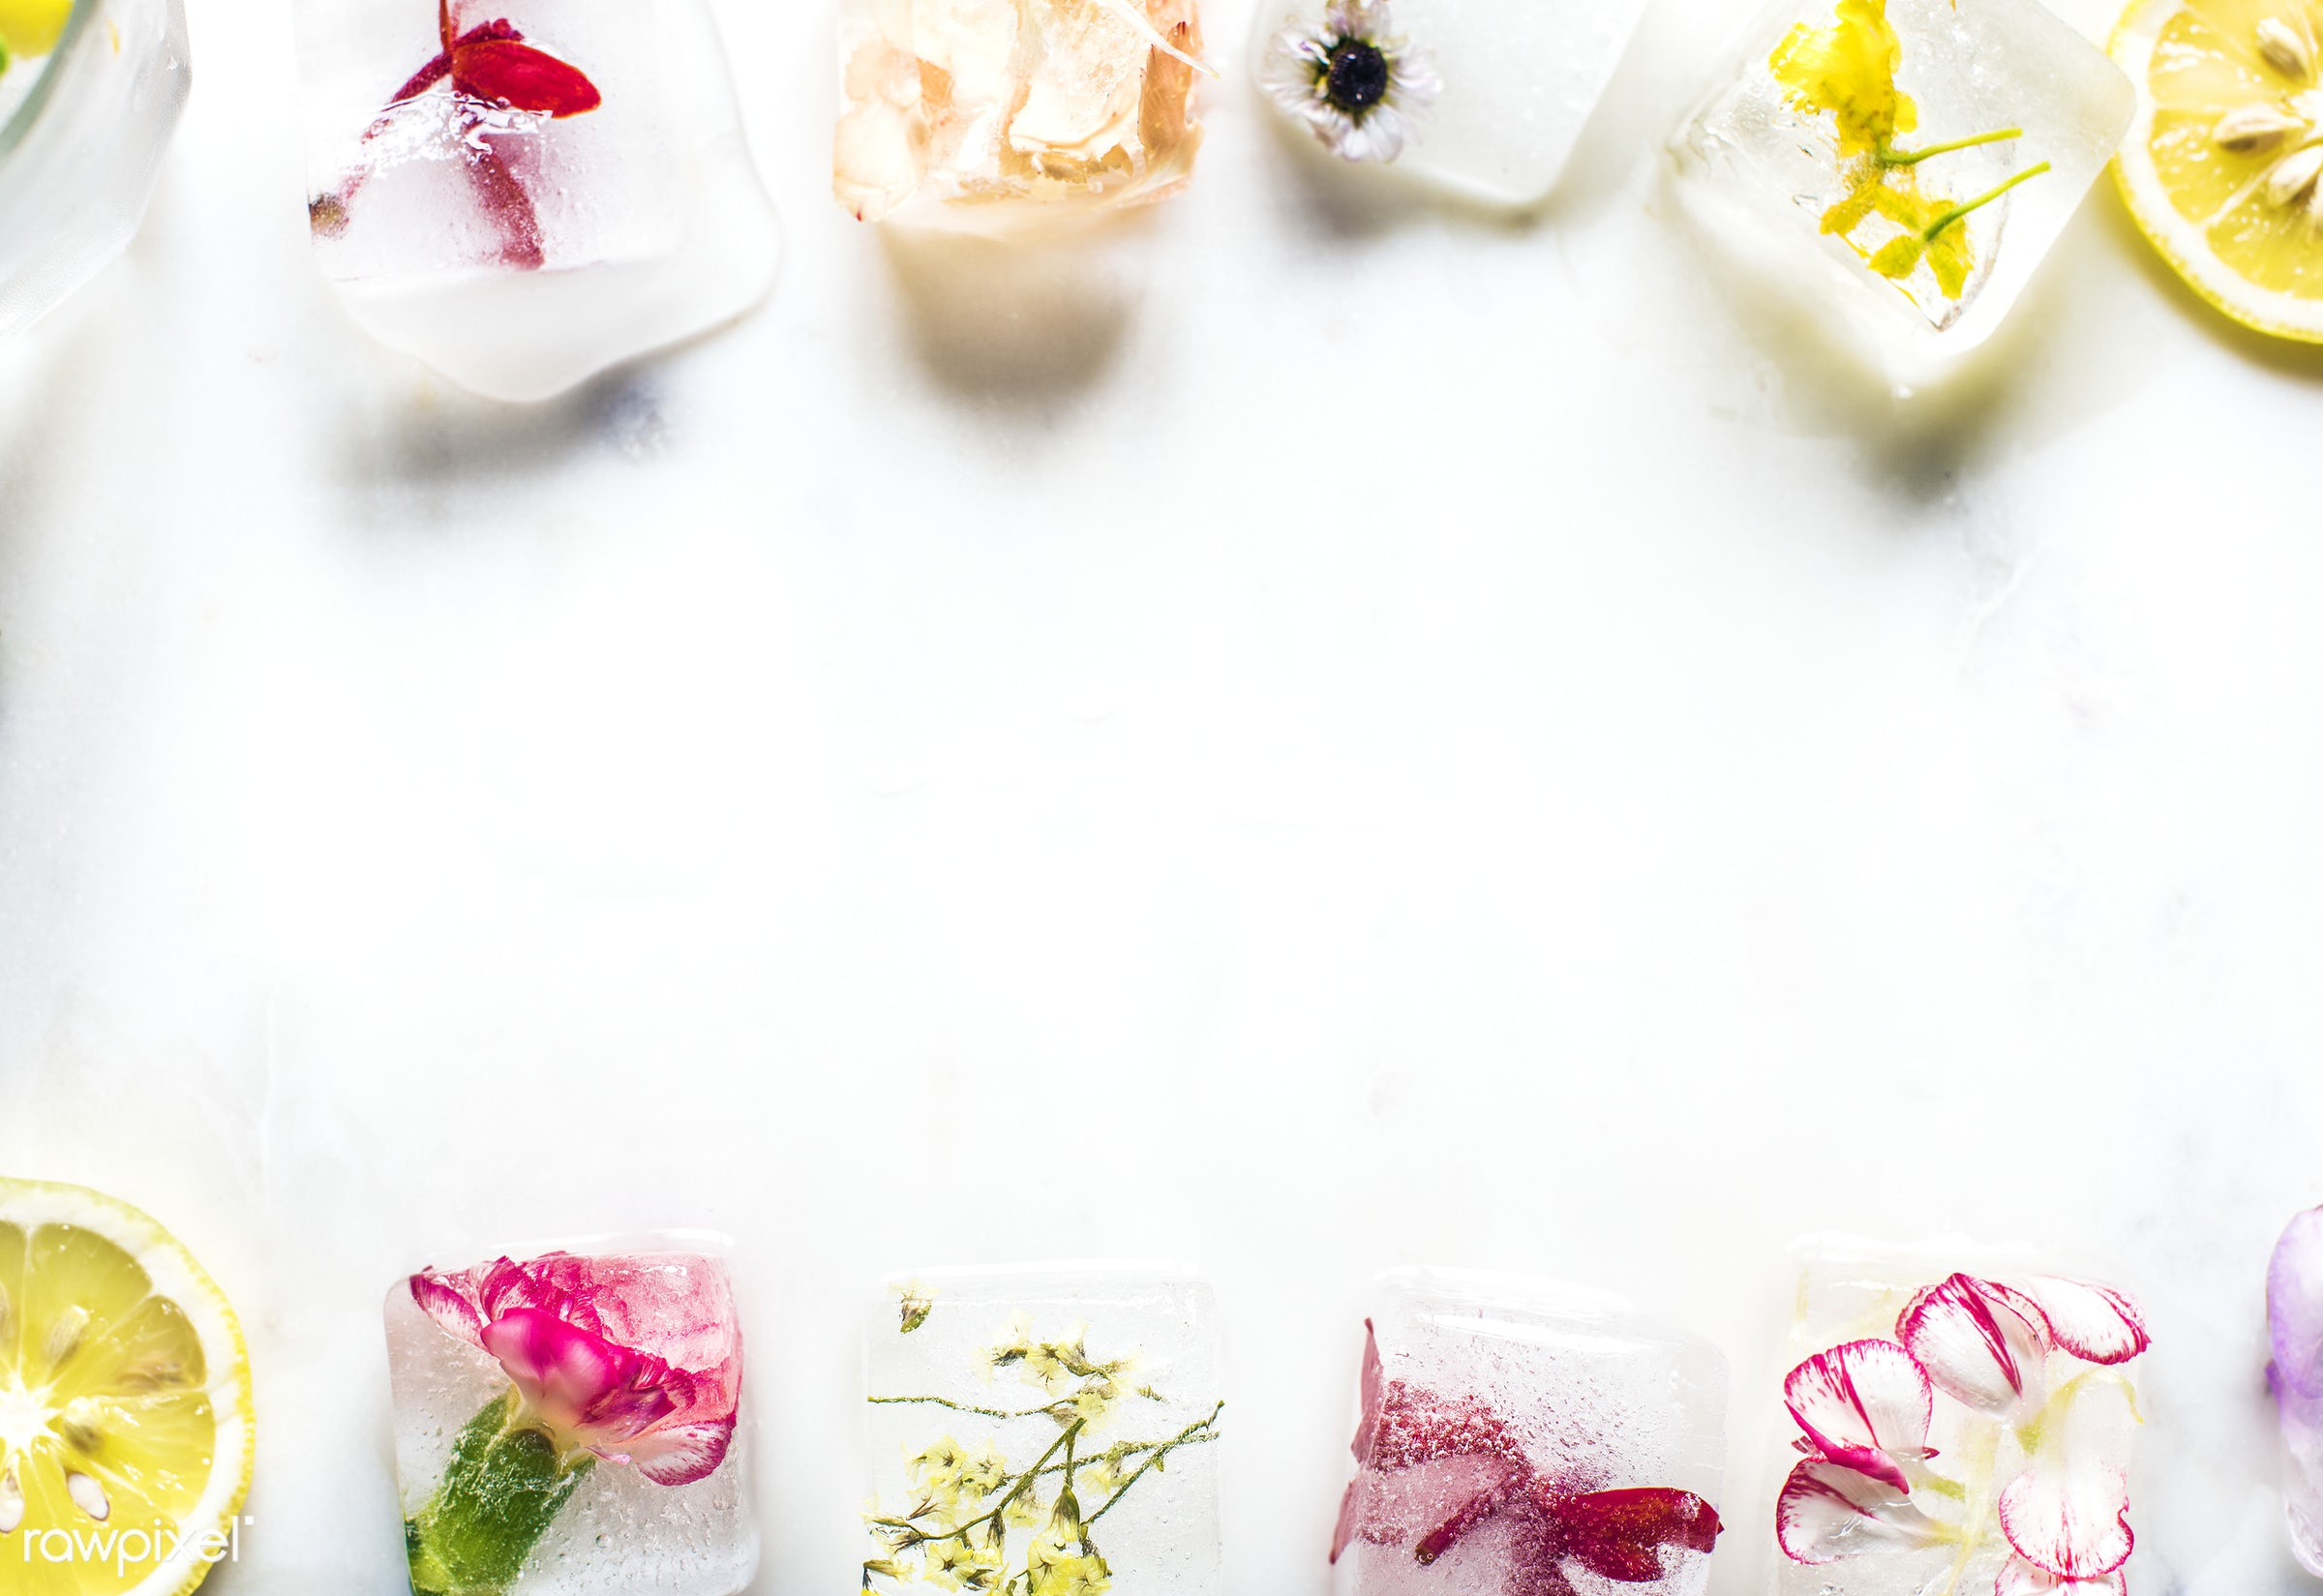 refrigerated, drop, homemade, frozen, refreshing, cold, ice, cooling, flowers, flower, cool, vintage, refreshment, cubes,...